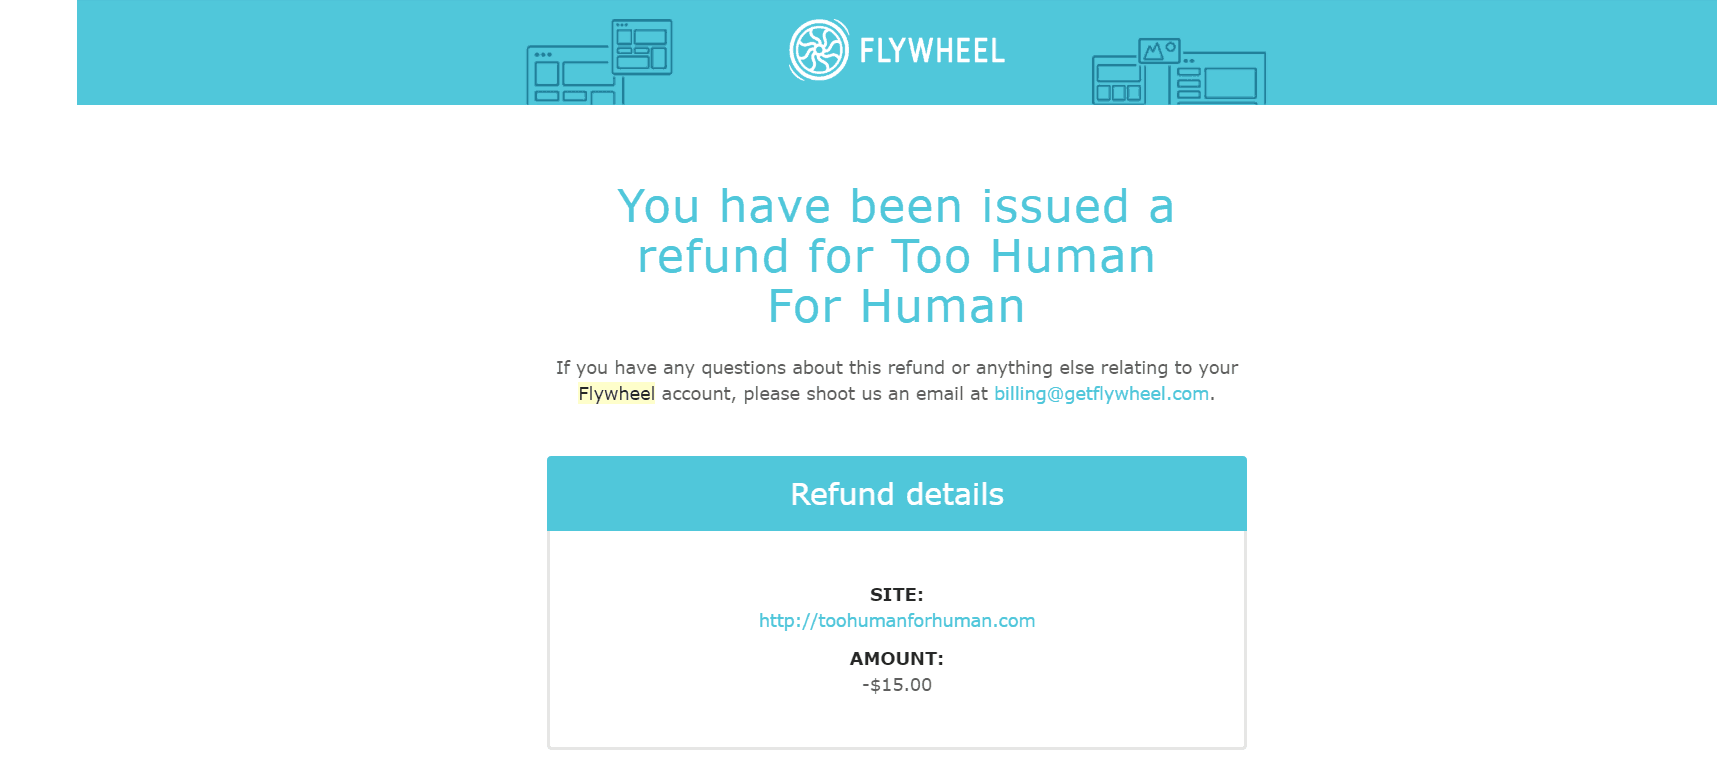 How-to-Cancel-Your-Account-with-Flywheel-and-Get-a-Refund-image9